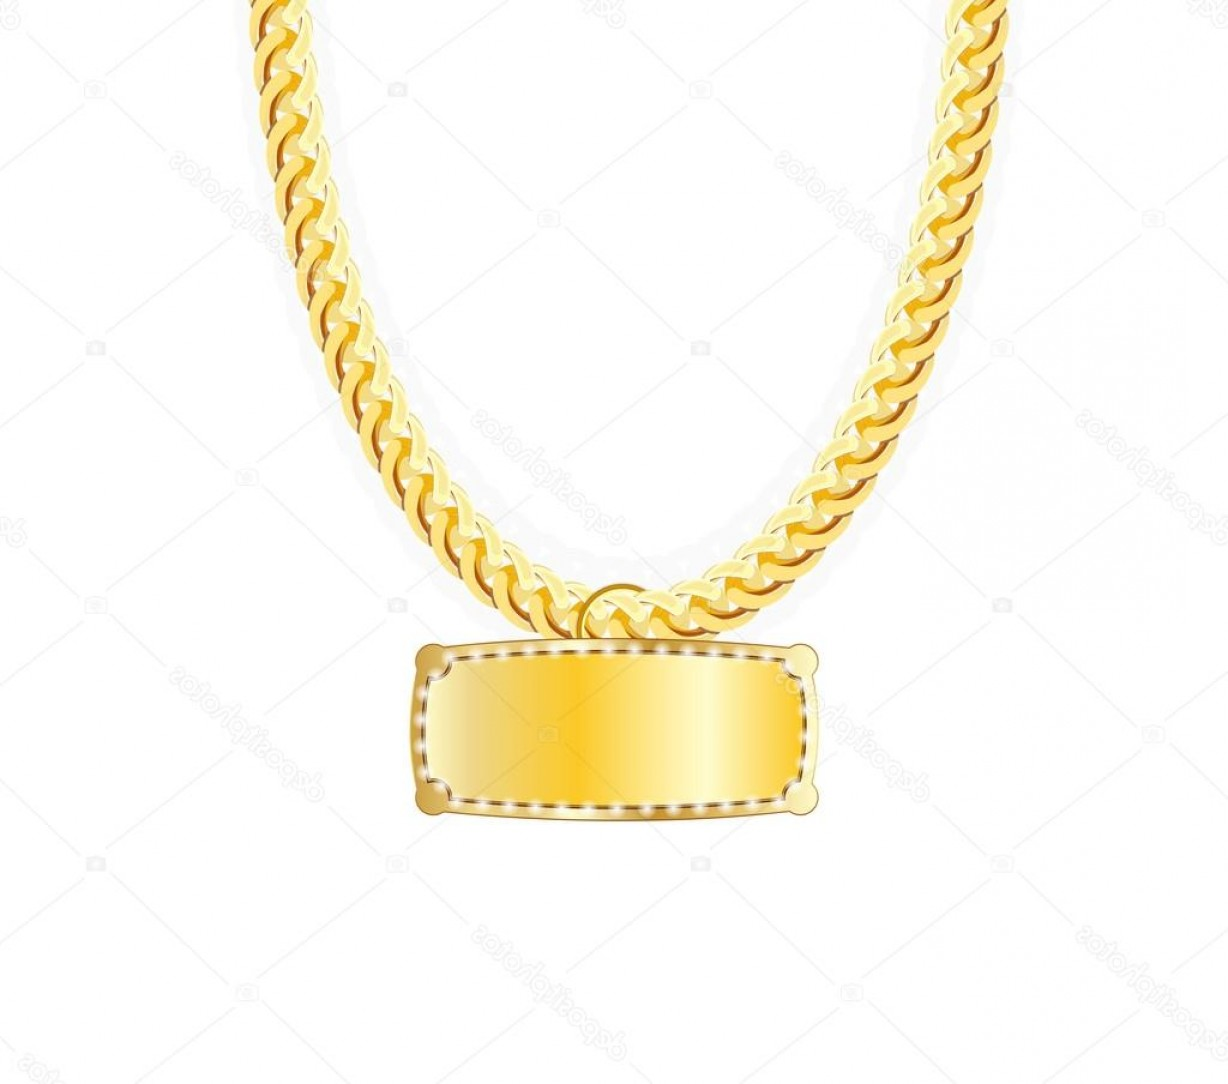 Necklace Vector Chain Grapicts: Stock Illustration Gold Chain Jewelry Whith Gold